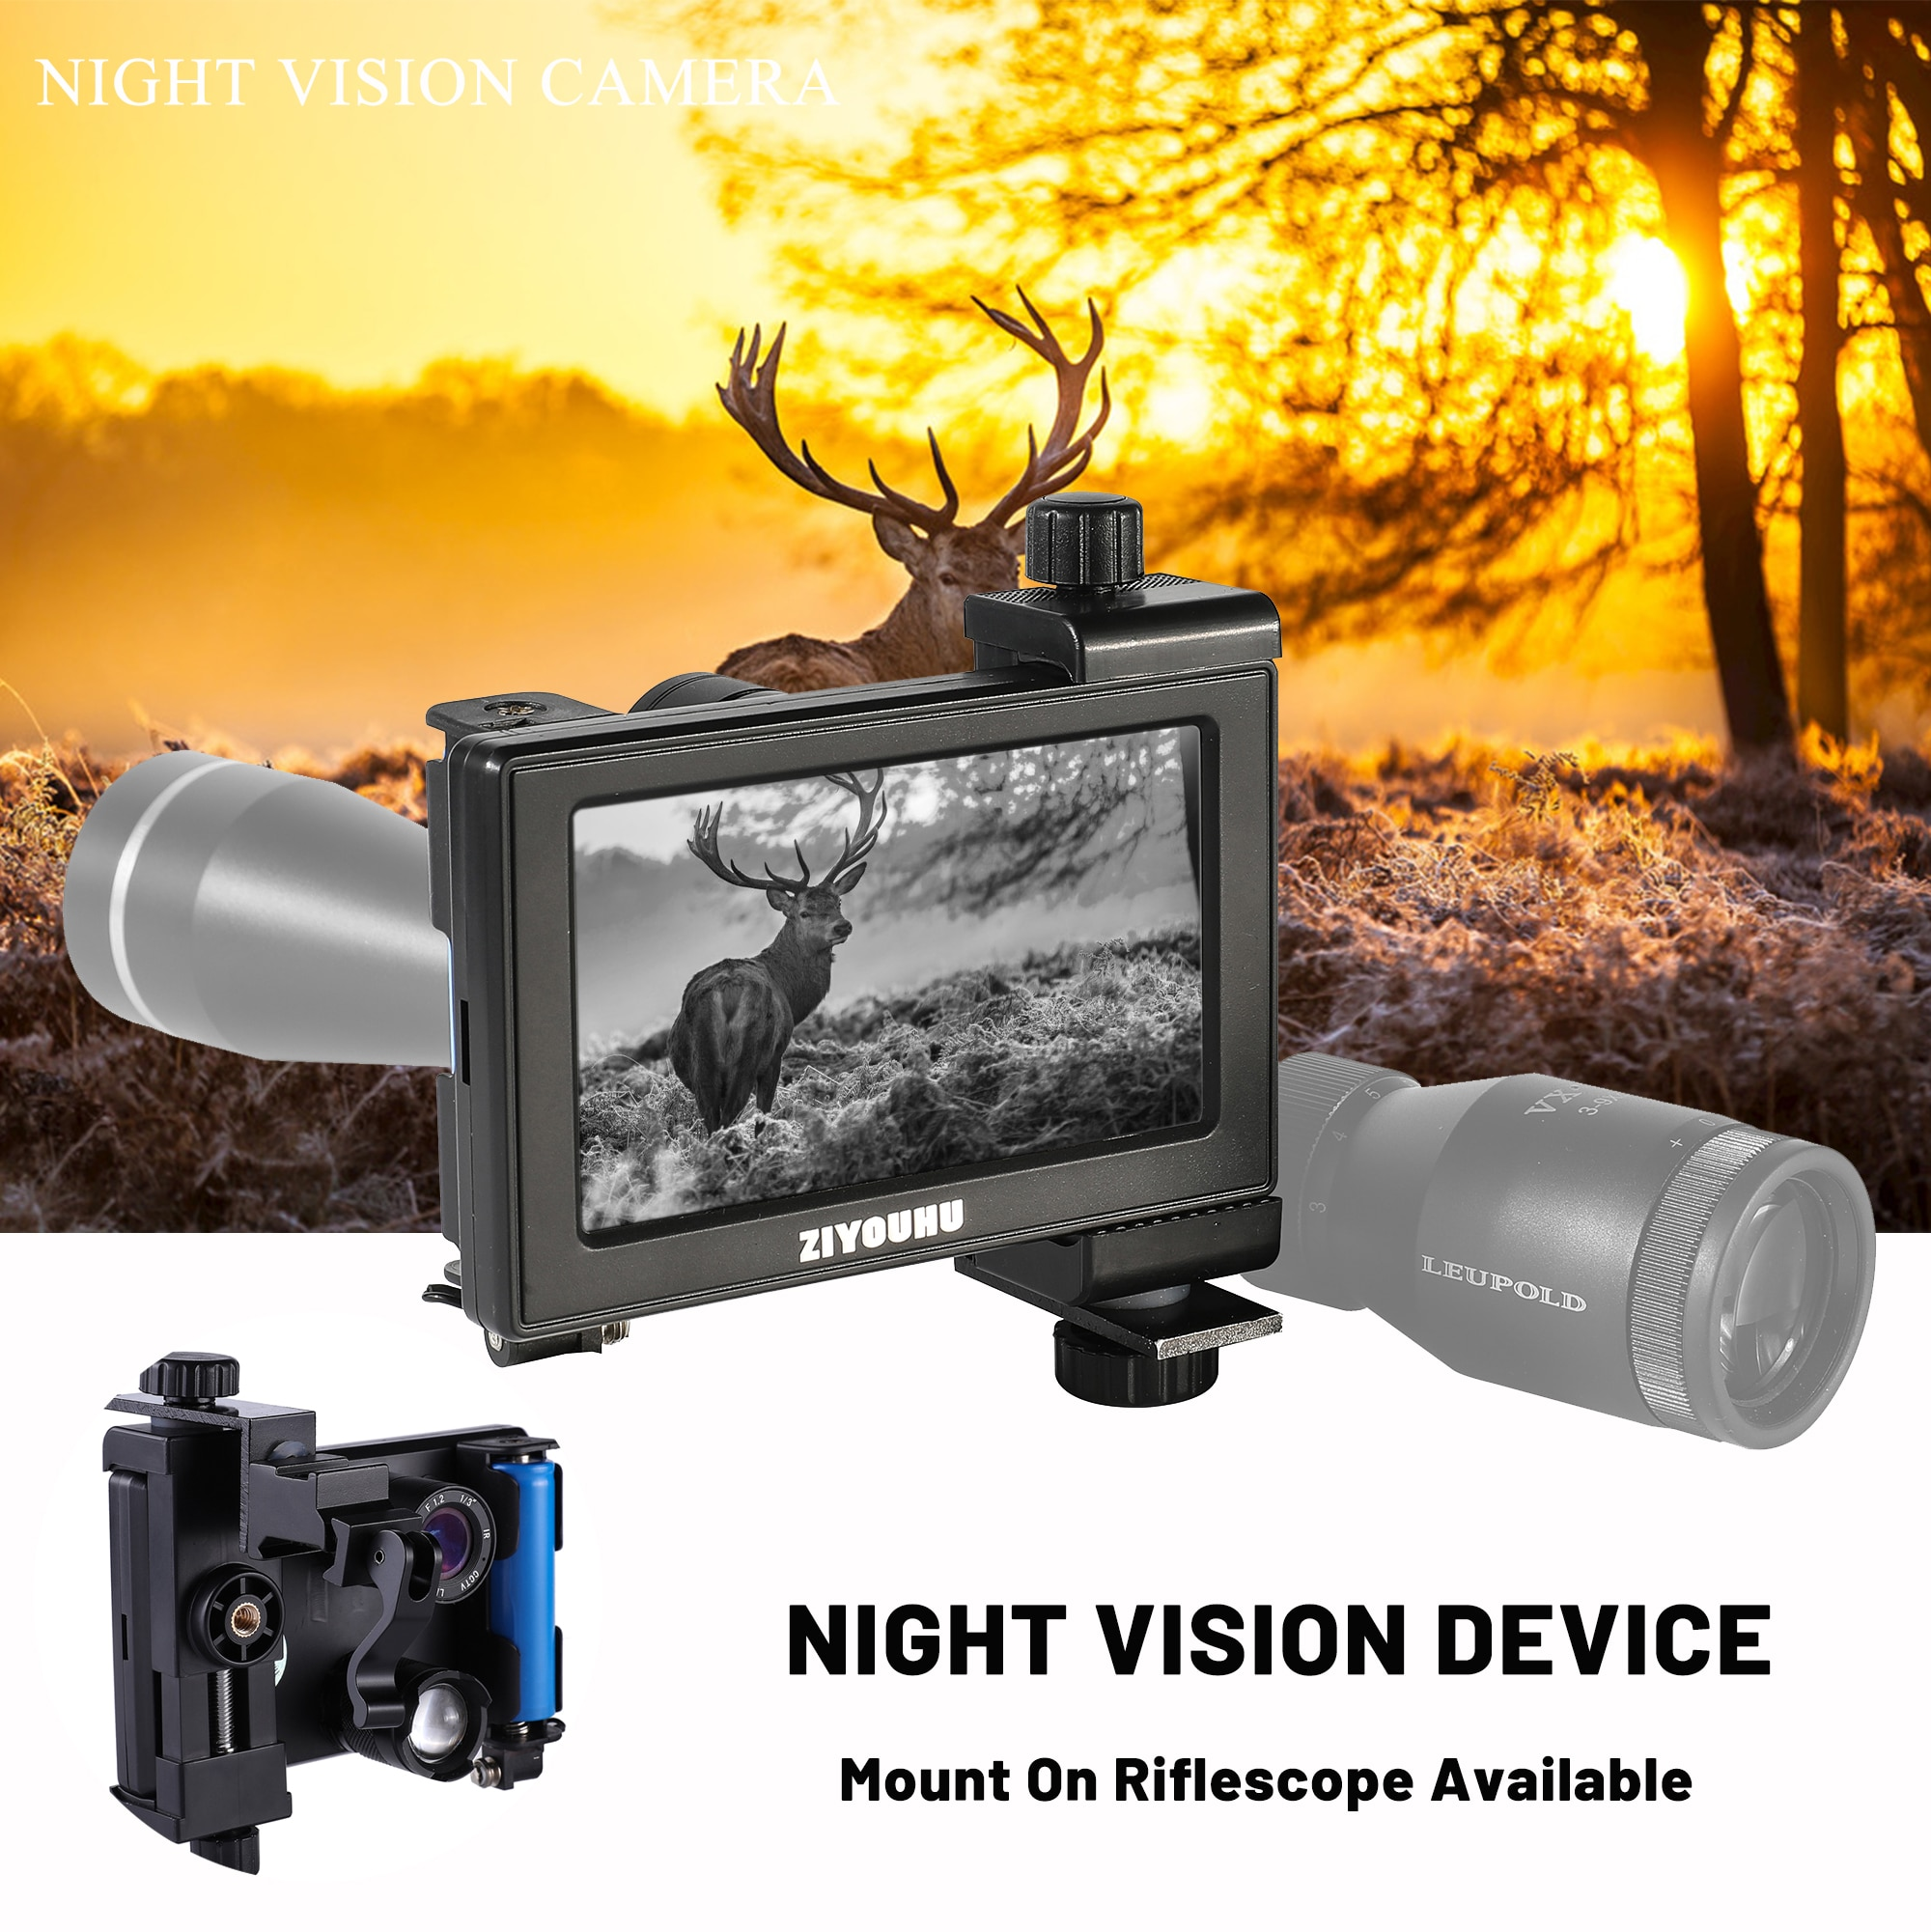 HD Clear Image Infared 12mm Lens Night Vision Camera Scope Adapter Mounted Long Range in Full Darkness Night Viewer for Hunting